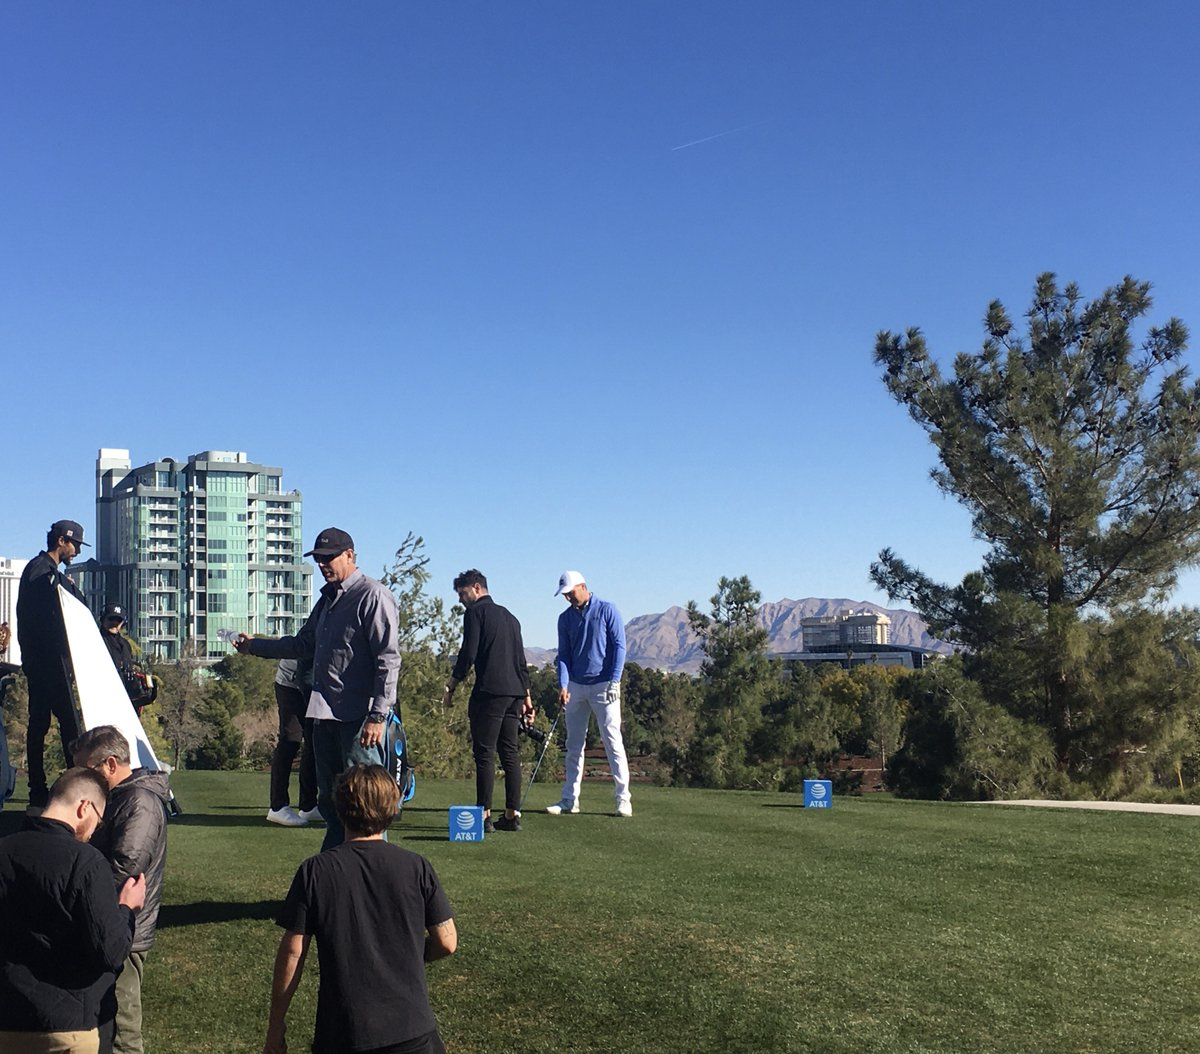 Little behind the scenes from the shoot today w/ @att in Vegas. Lot of exciting things for 2020! #attathlete https://t.co/ypUOxHFuBe